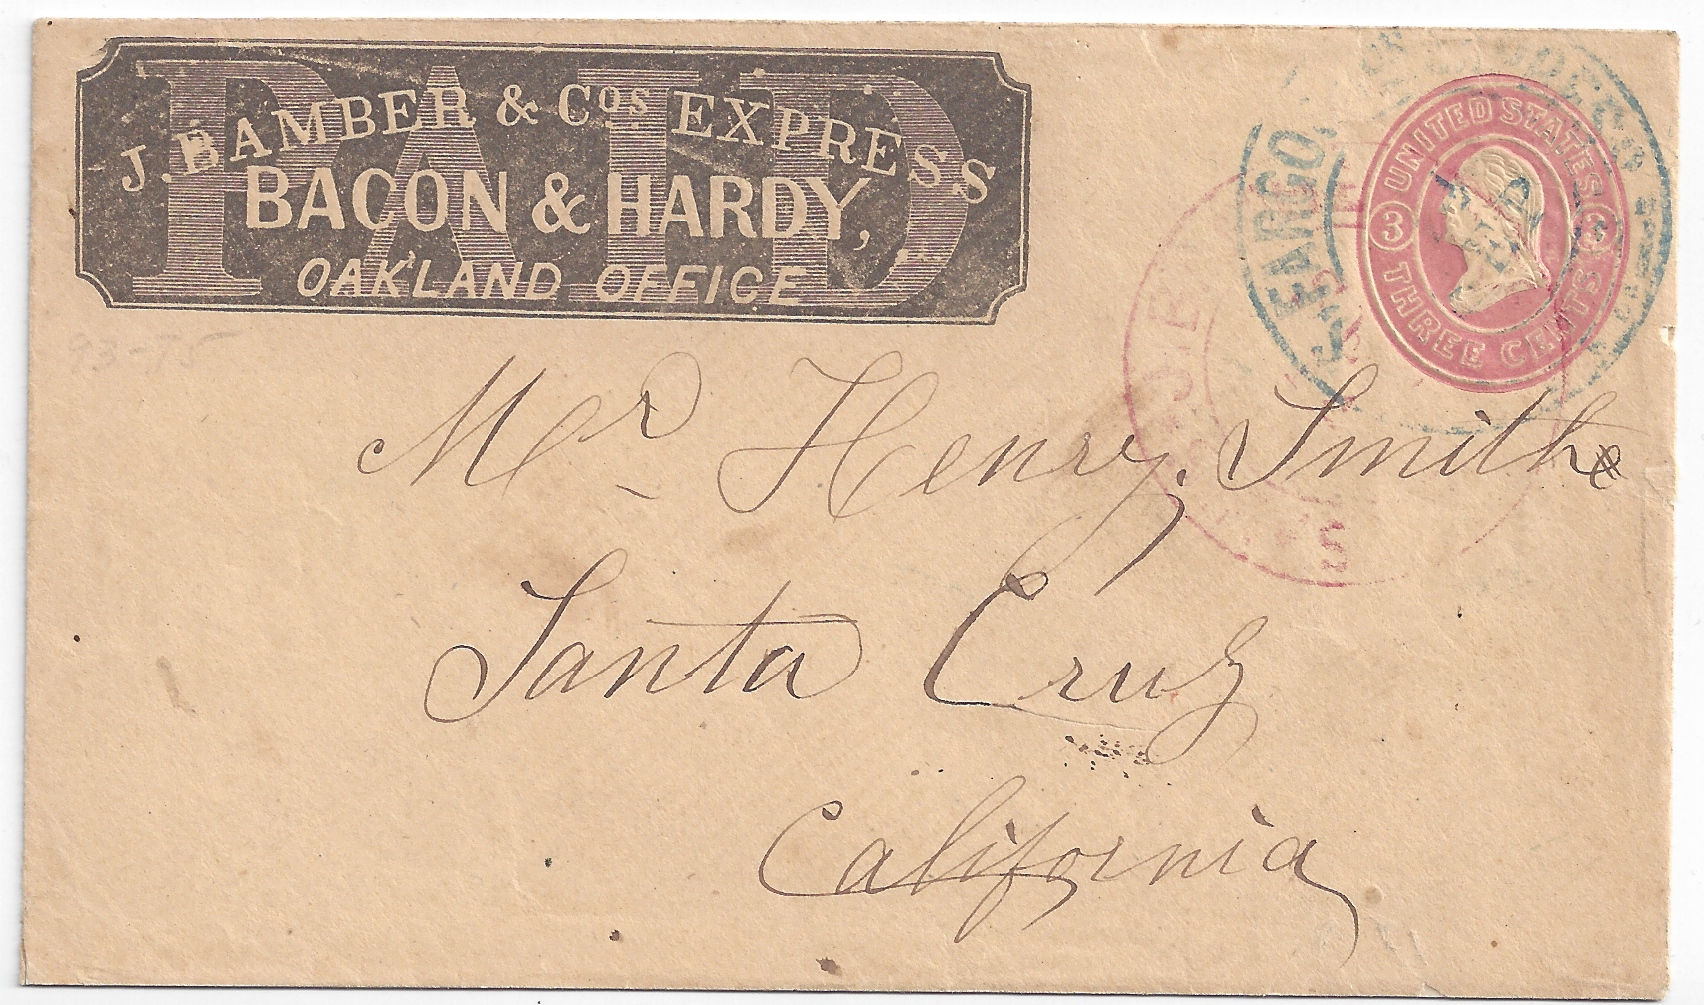 Whitington Collection of Western Express Covers